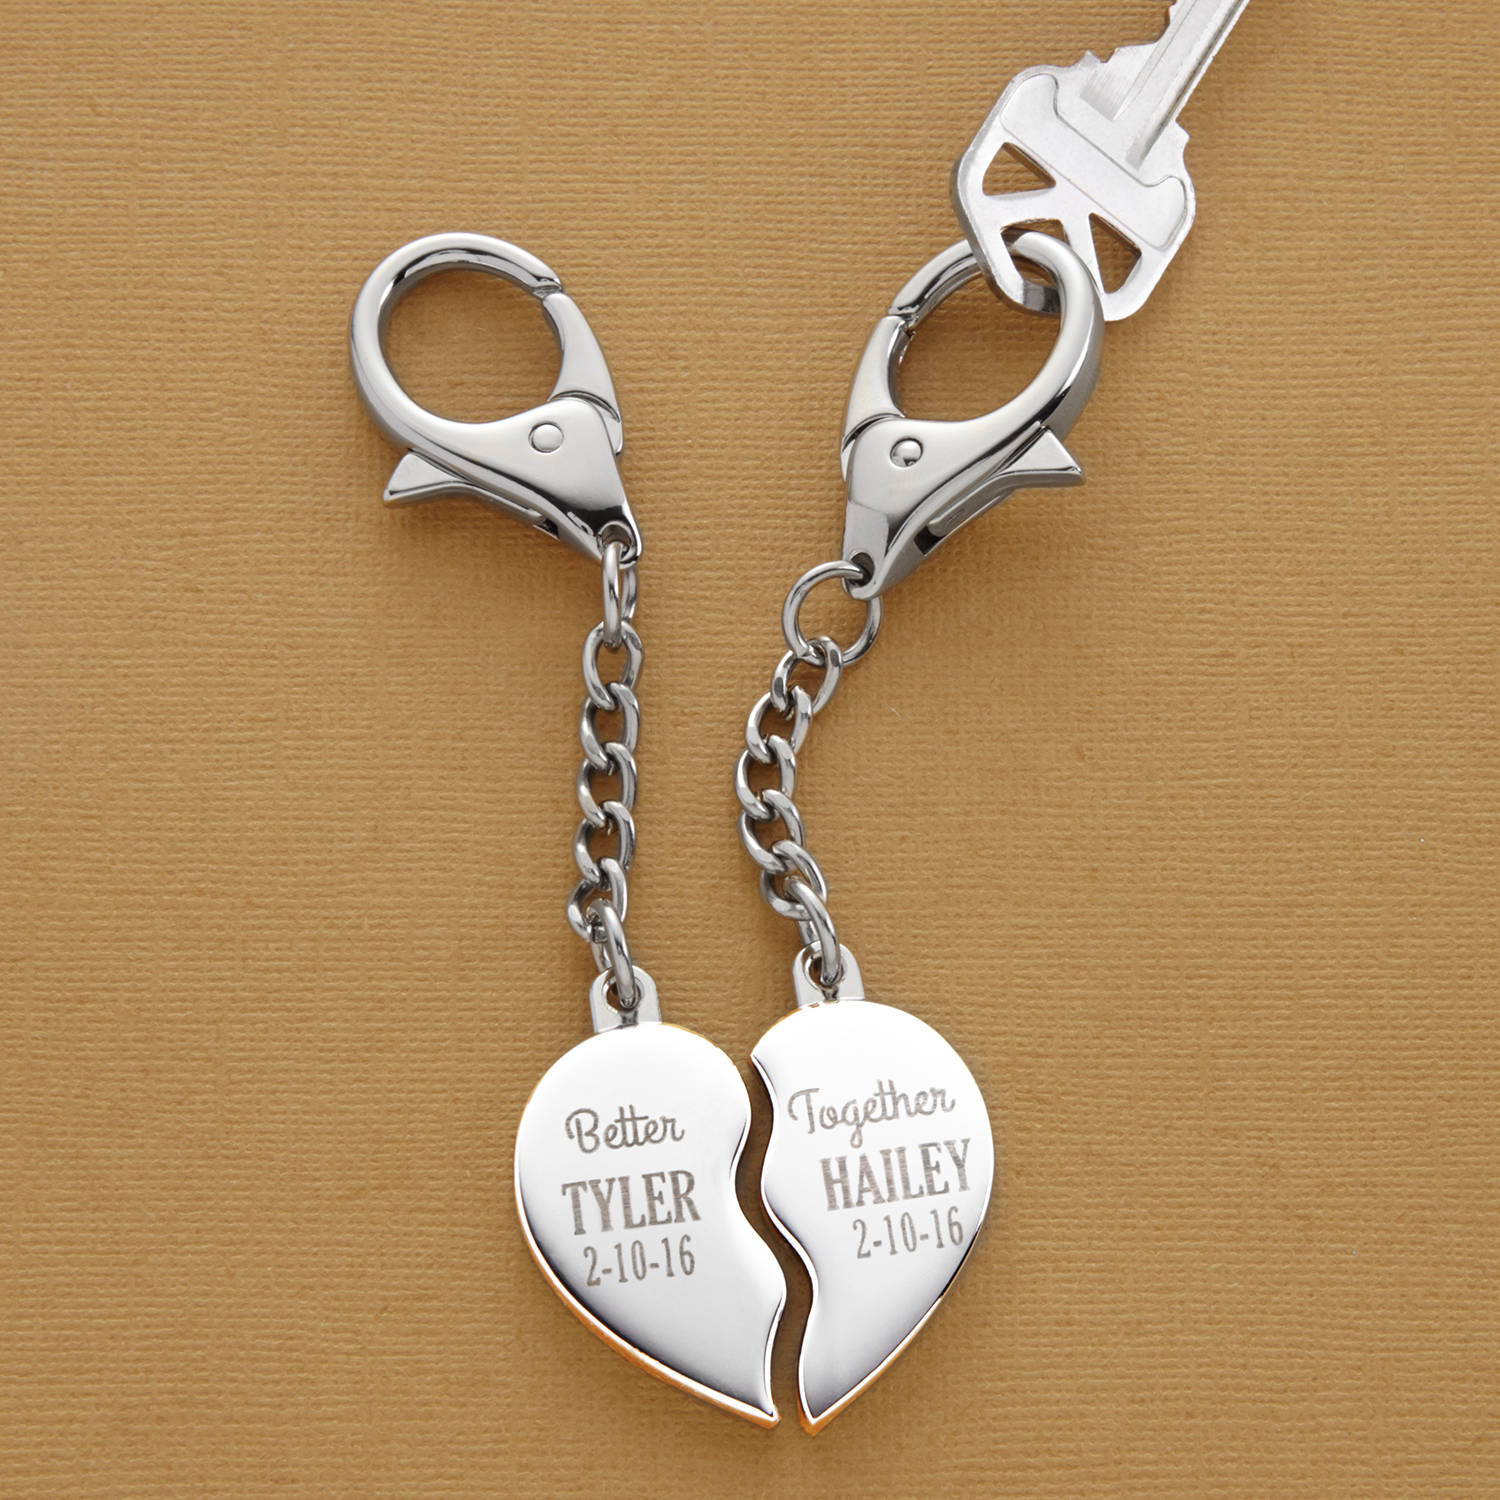 Personalized Better Together Heart Key Chain